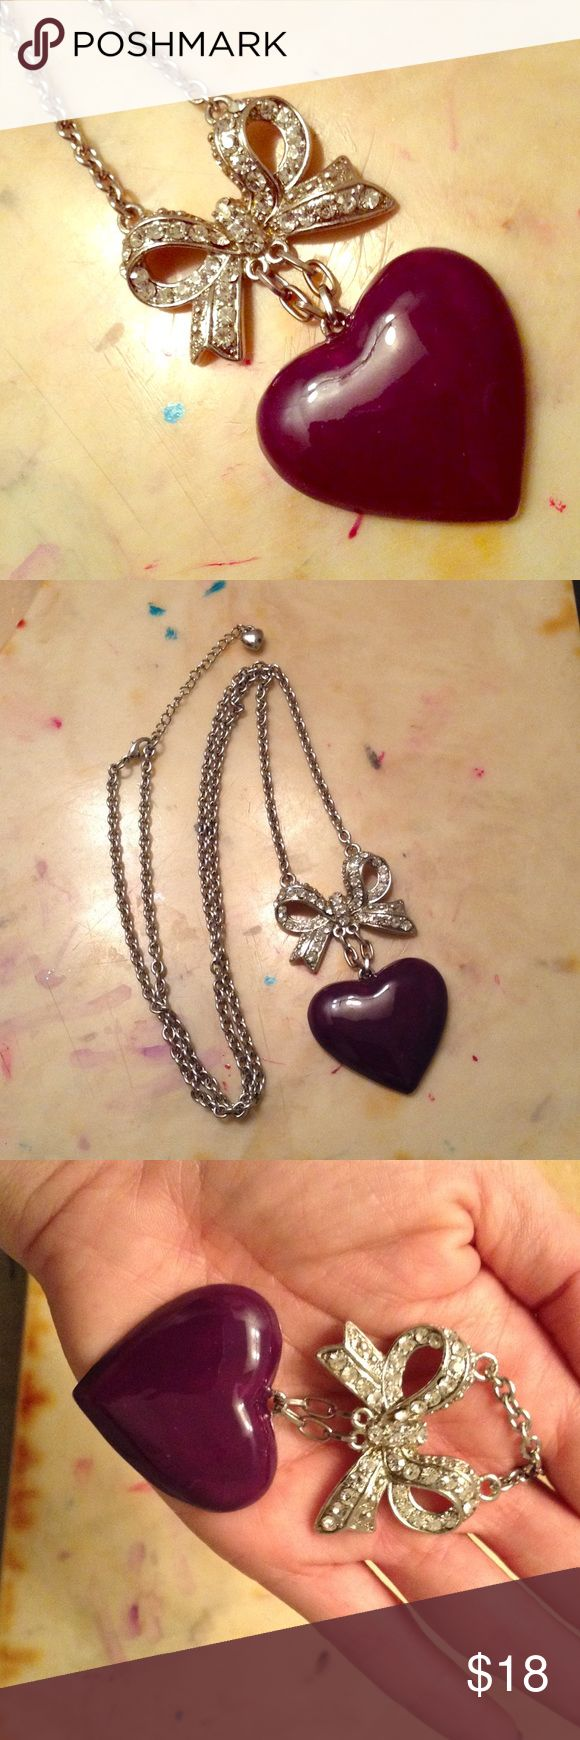 17 in purple heart w/ rhinestone bow necklace Super cute 17in long necklace / purple enamel heart with rhinestone bow / long necklaces elongates your figure can spice up any outfit / cleaning out my jewelry armoire open to offers Jewelry Necklaces